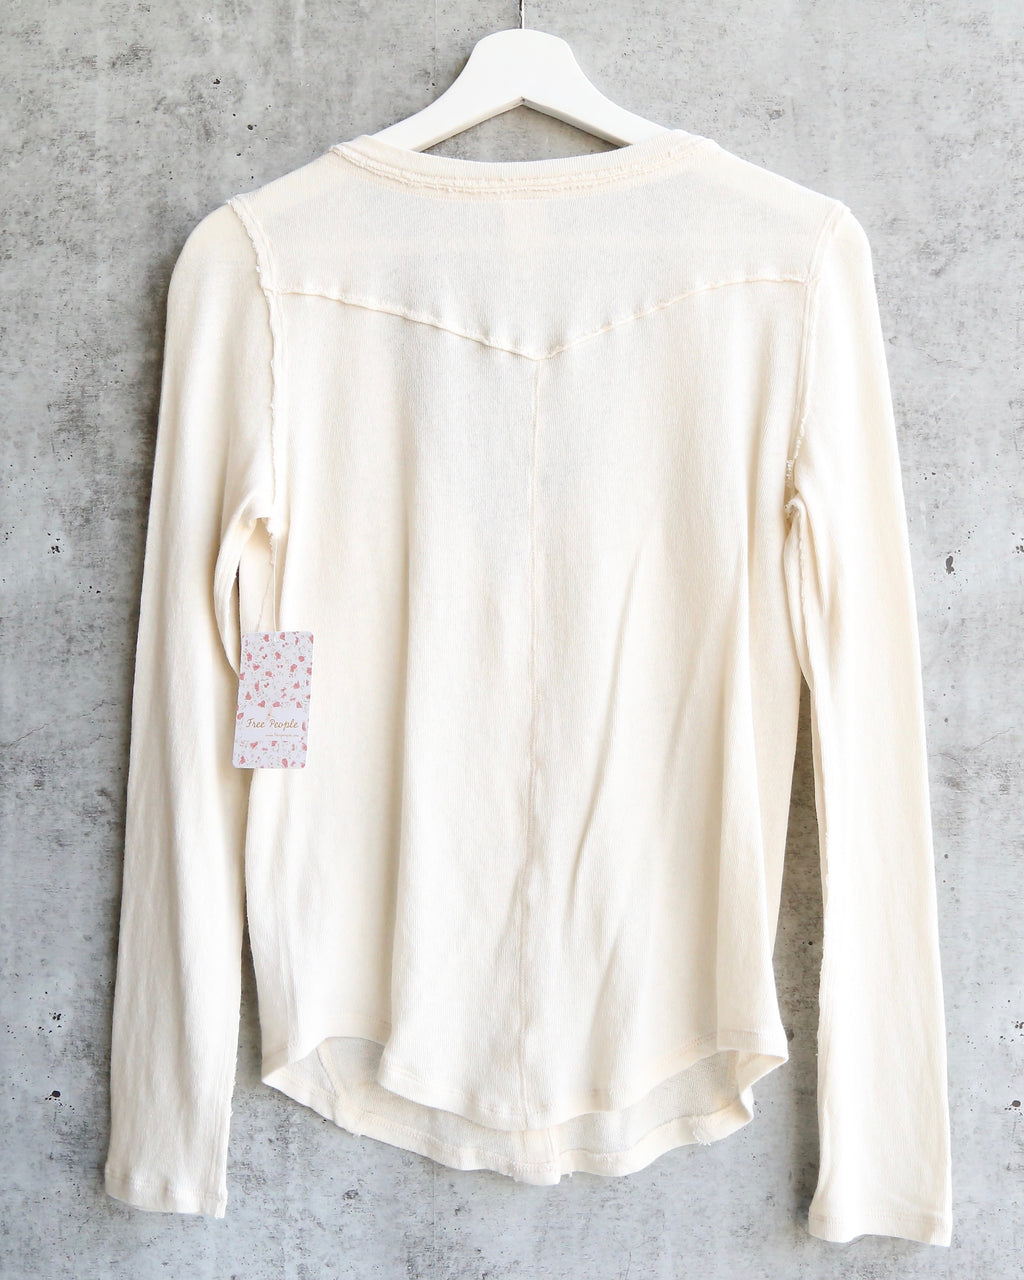 Free People - Starlight Henley Knit Button Down Top - Ivory